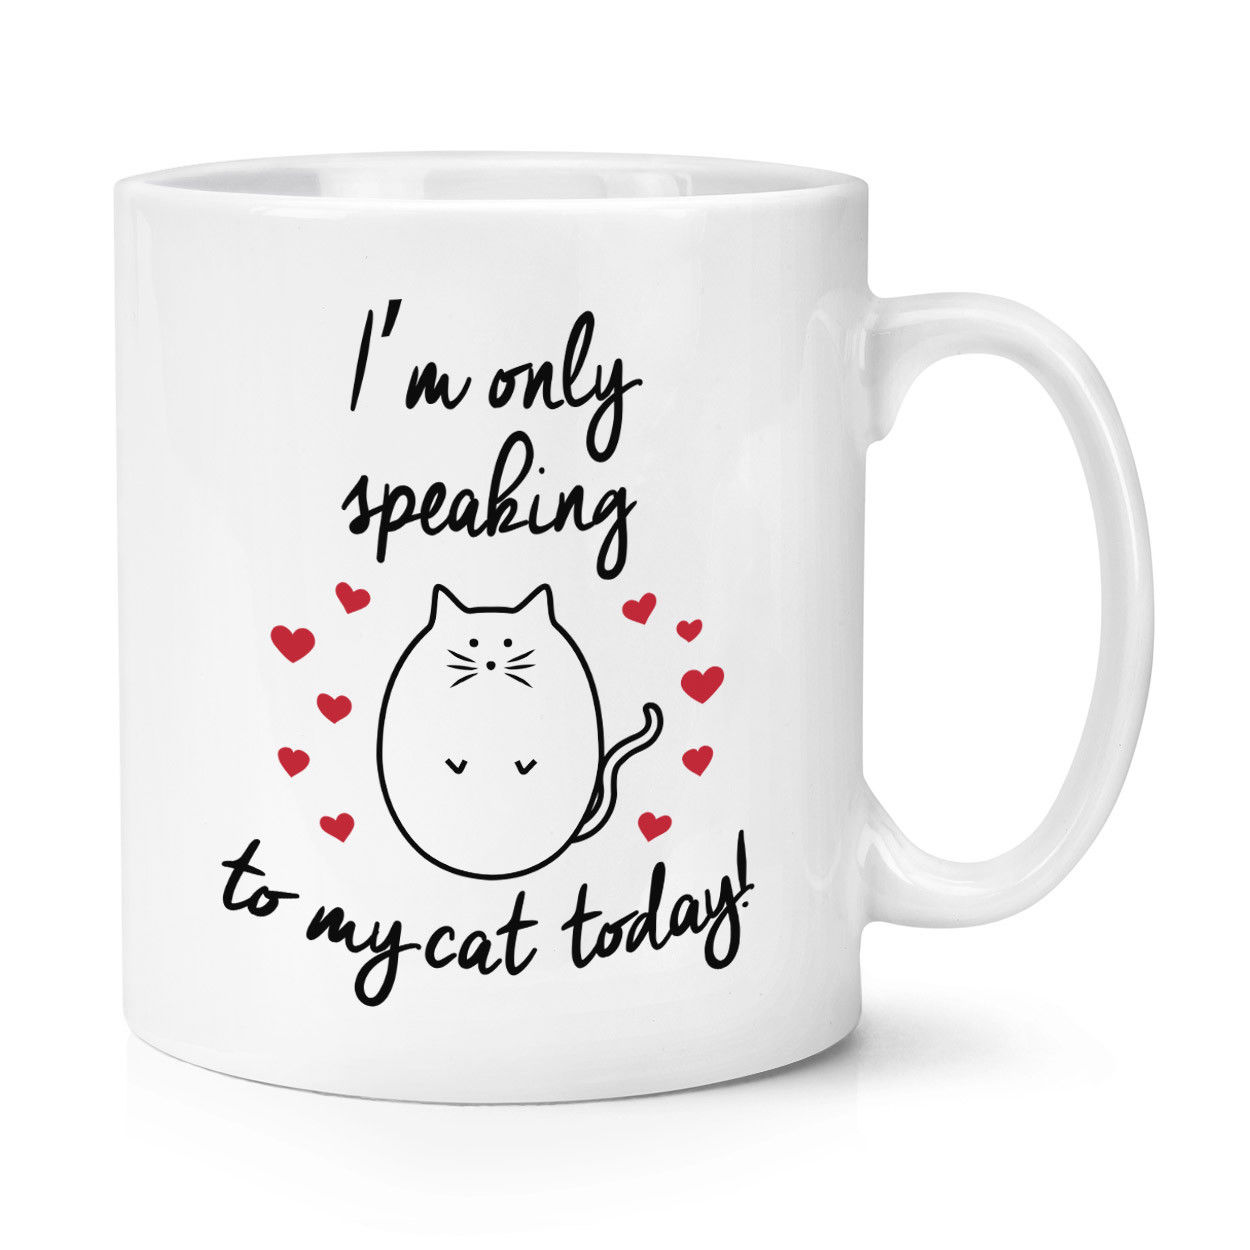 I'm Only Speaking To My Cat Today 10oz Mug Cup - Kitten Funny Crazy Cat Lady image